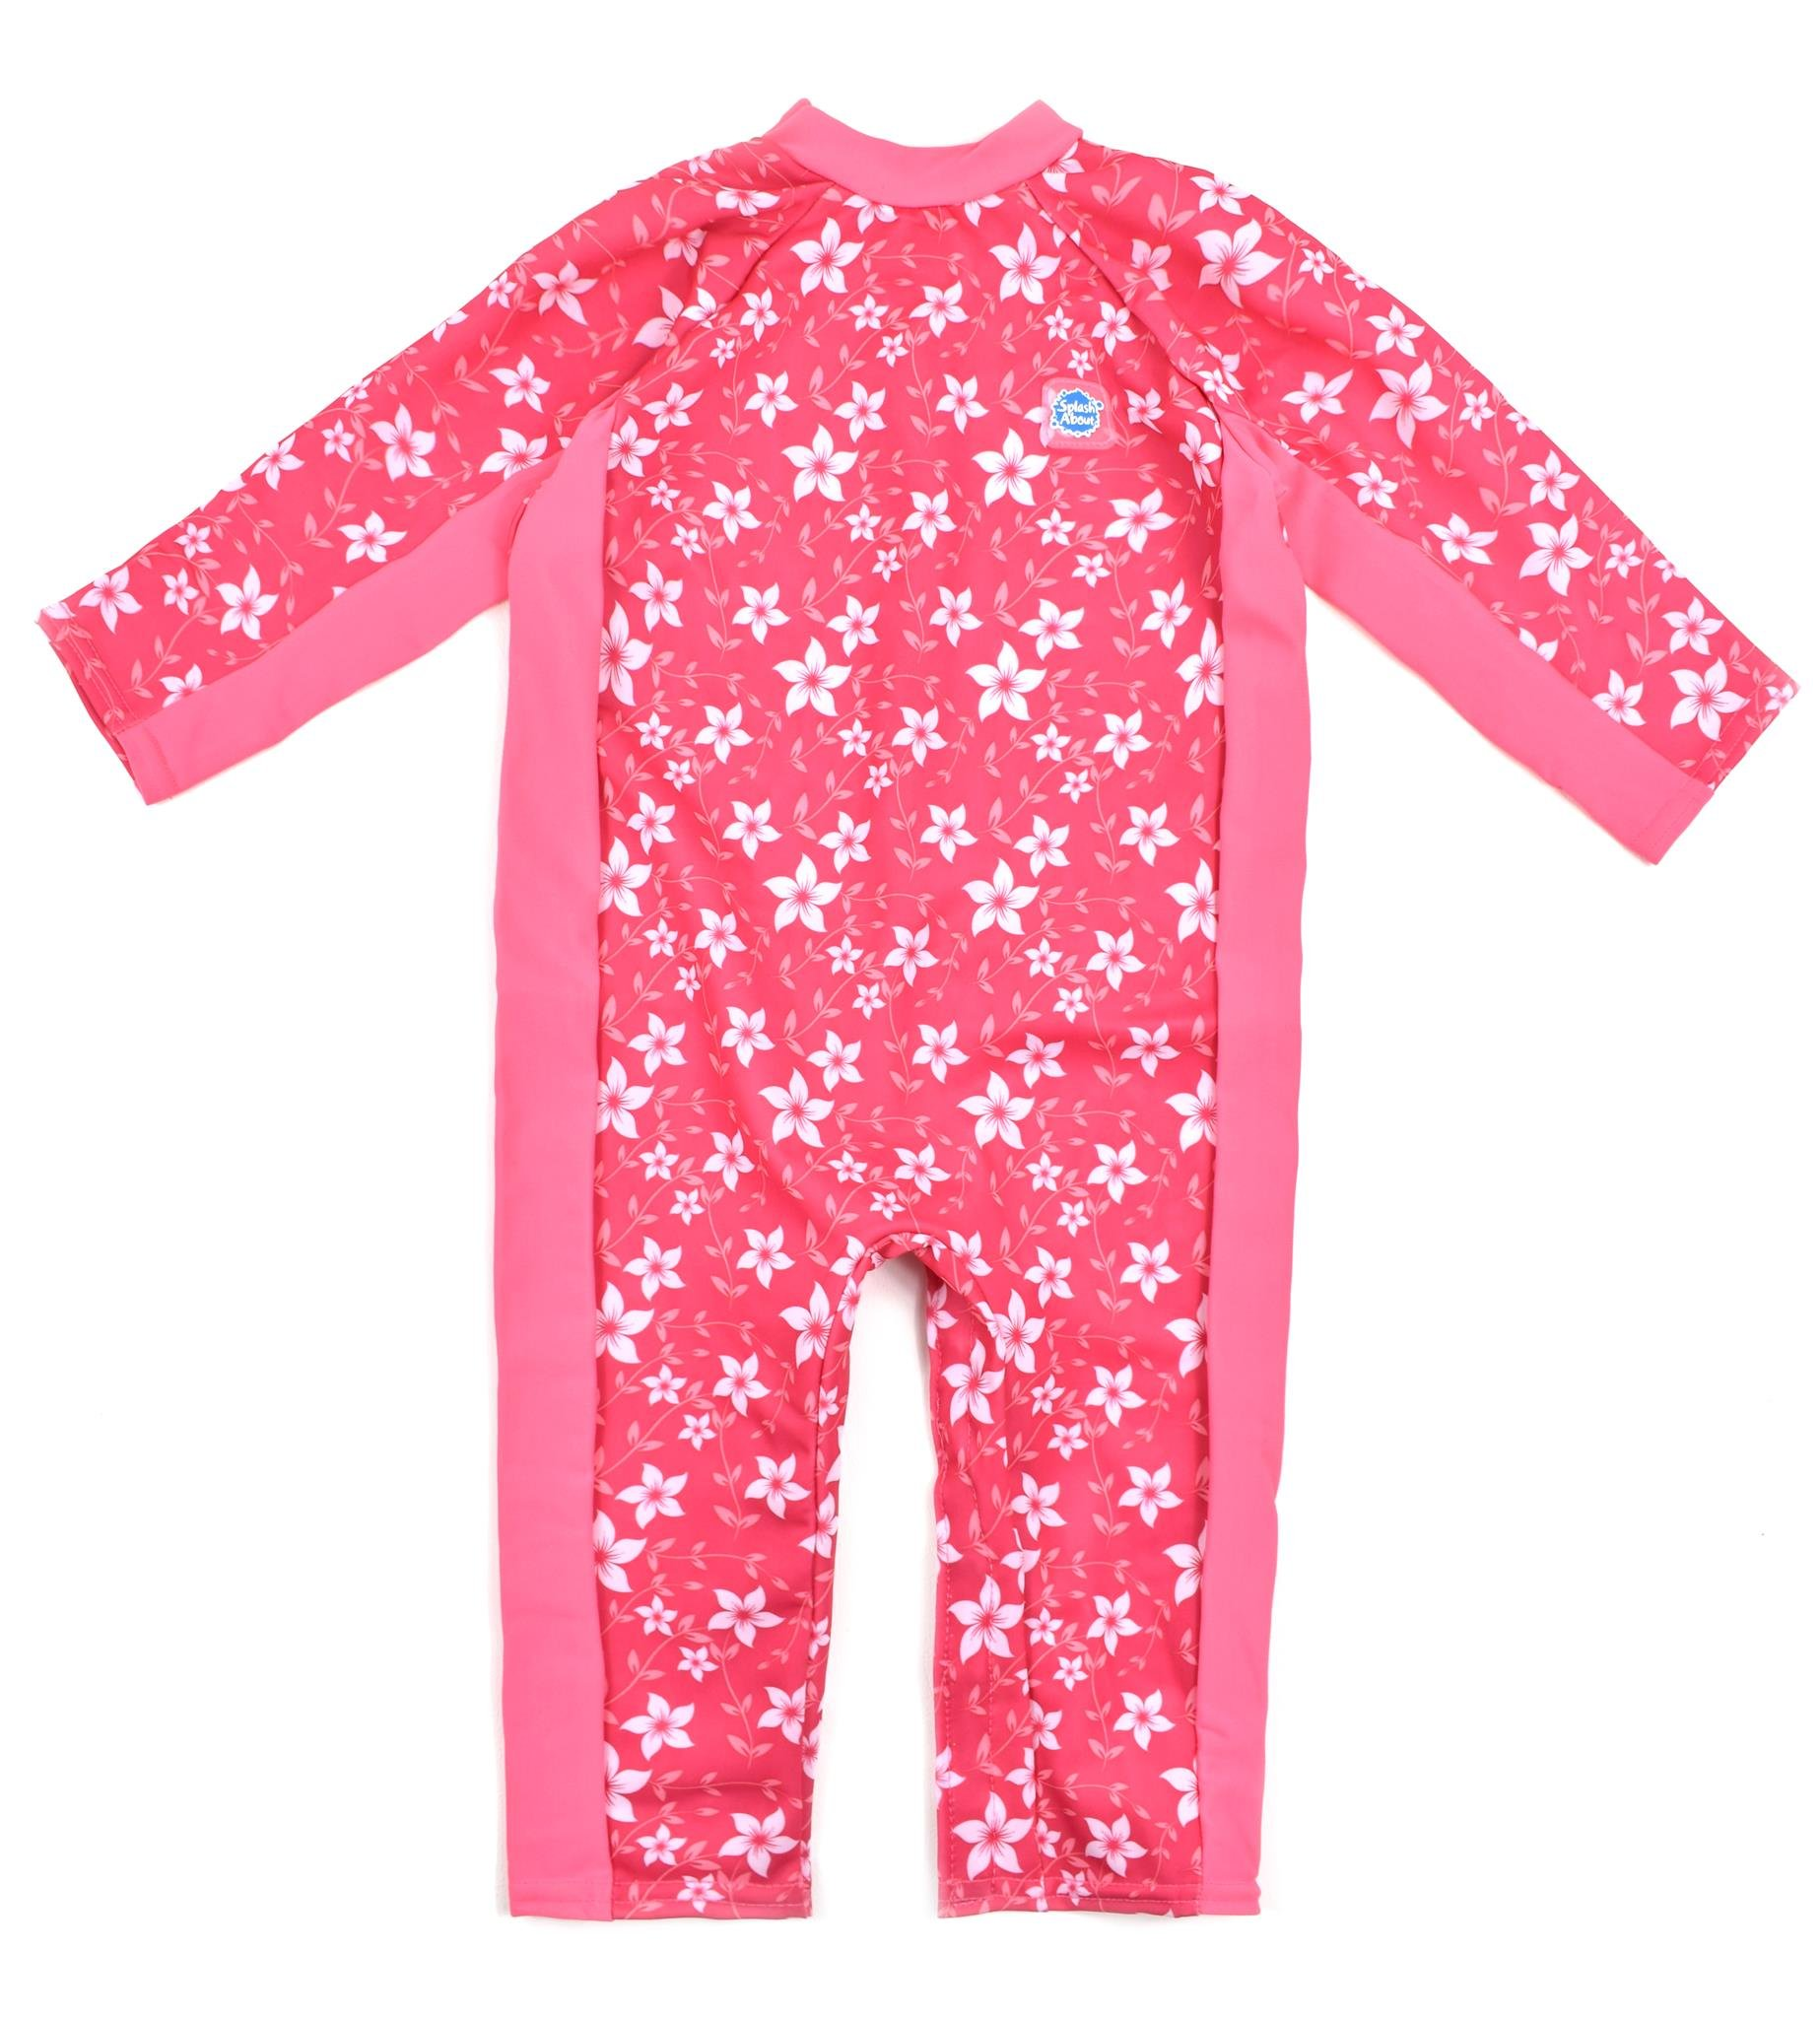 Splash About UV (SPF50+) Sun Protection All in One Suit/Eczema Suit, 6-12 Months (Chest: 59 cm, Length: 33 cm), Pink Blossom